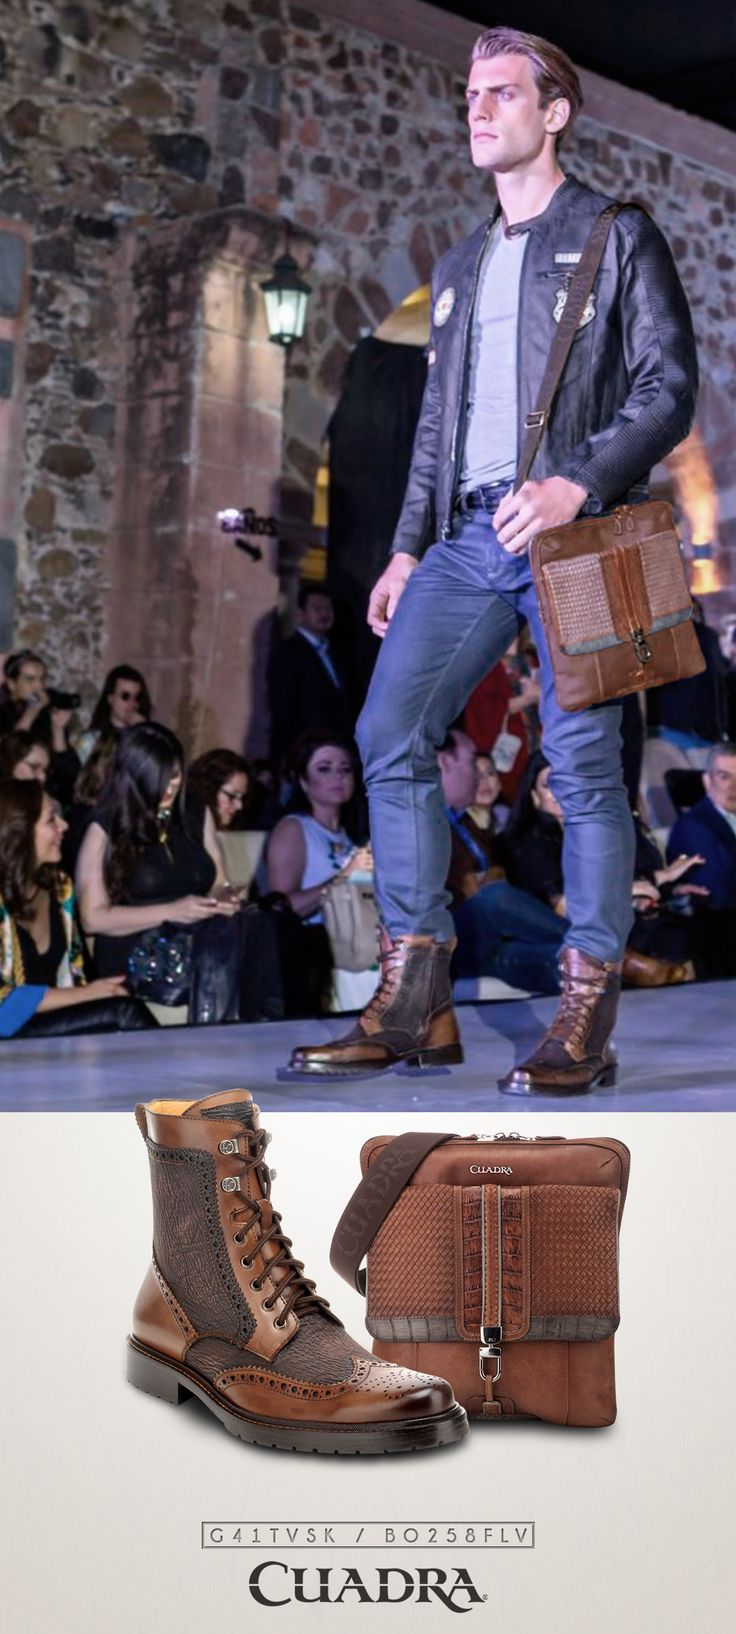 Cuando usas Cuadra se nota. #fashion #mensfashion #menswear #botas #ootd #boots #handbag #jacket #model #pasarela